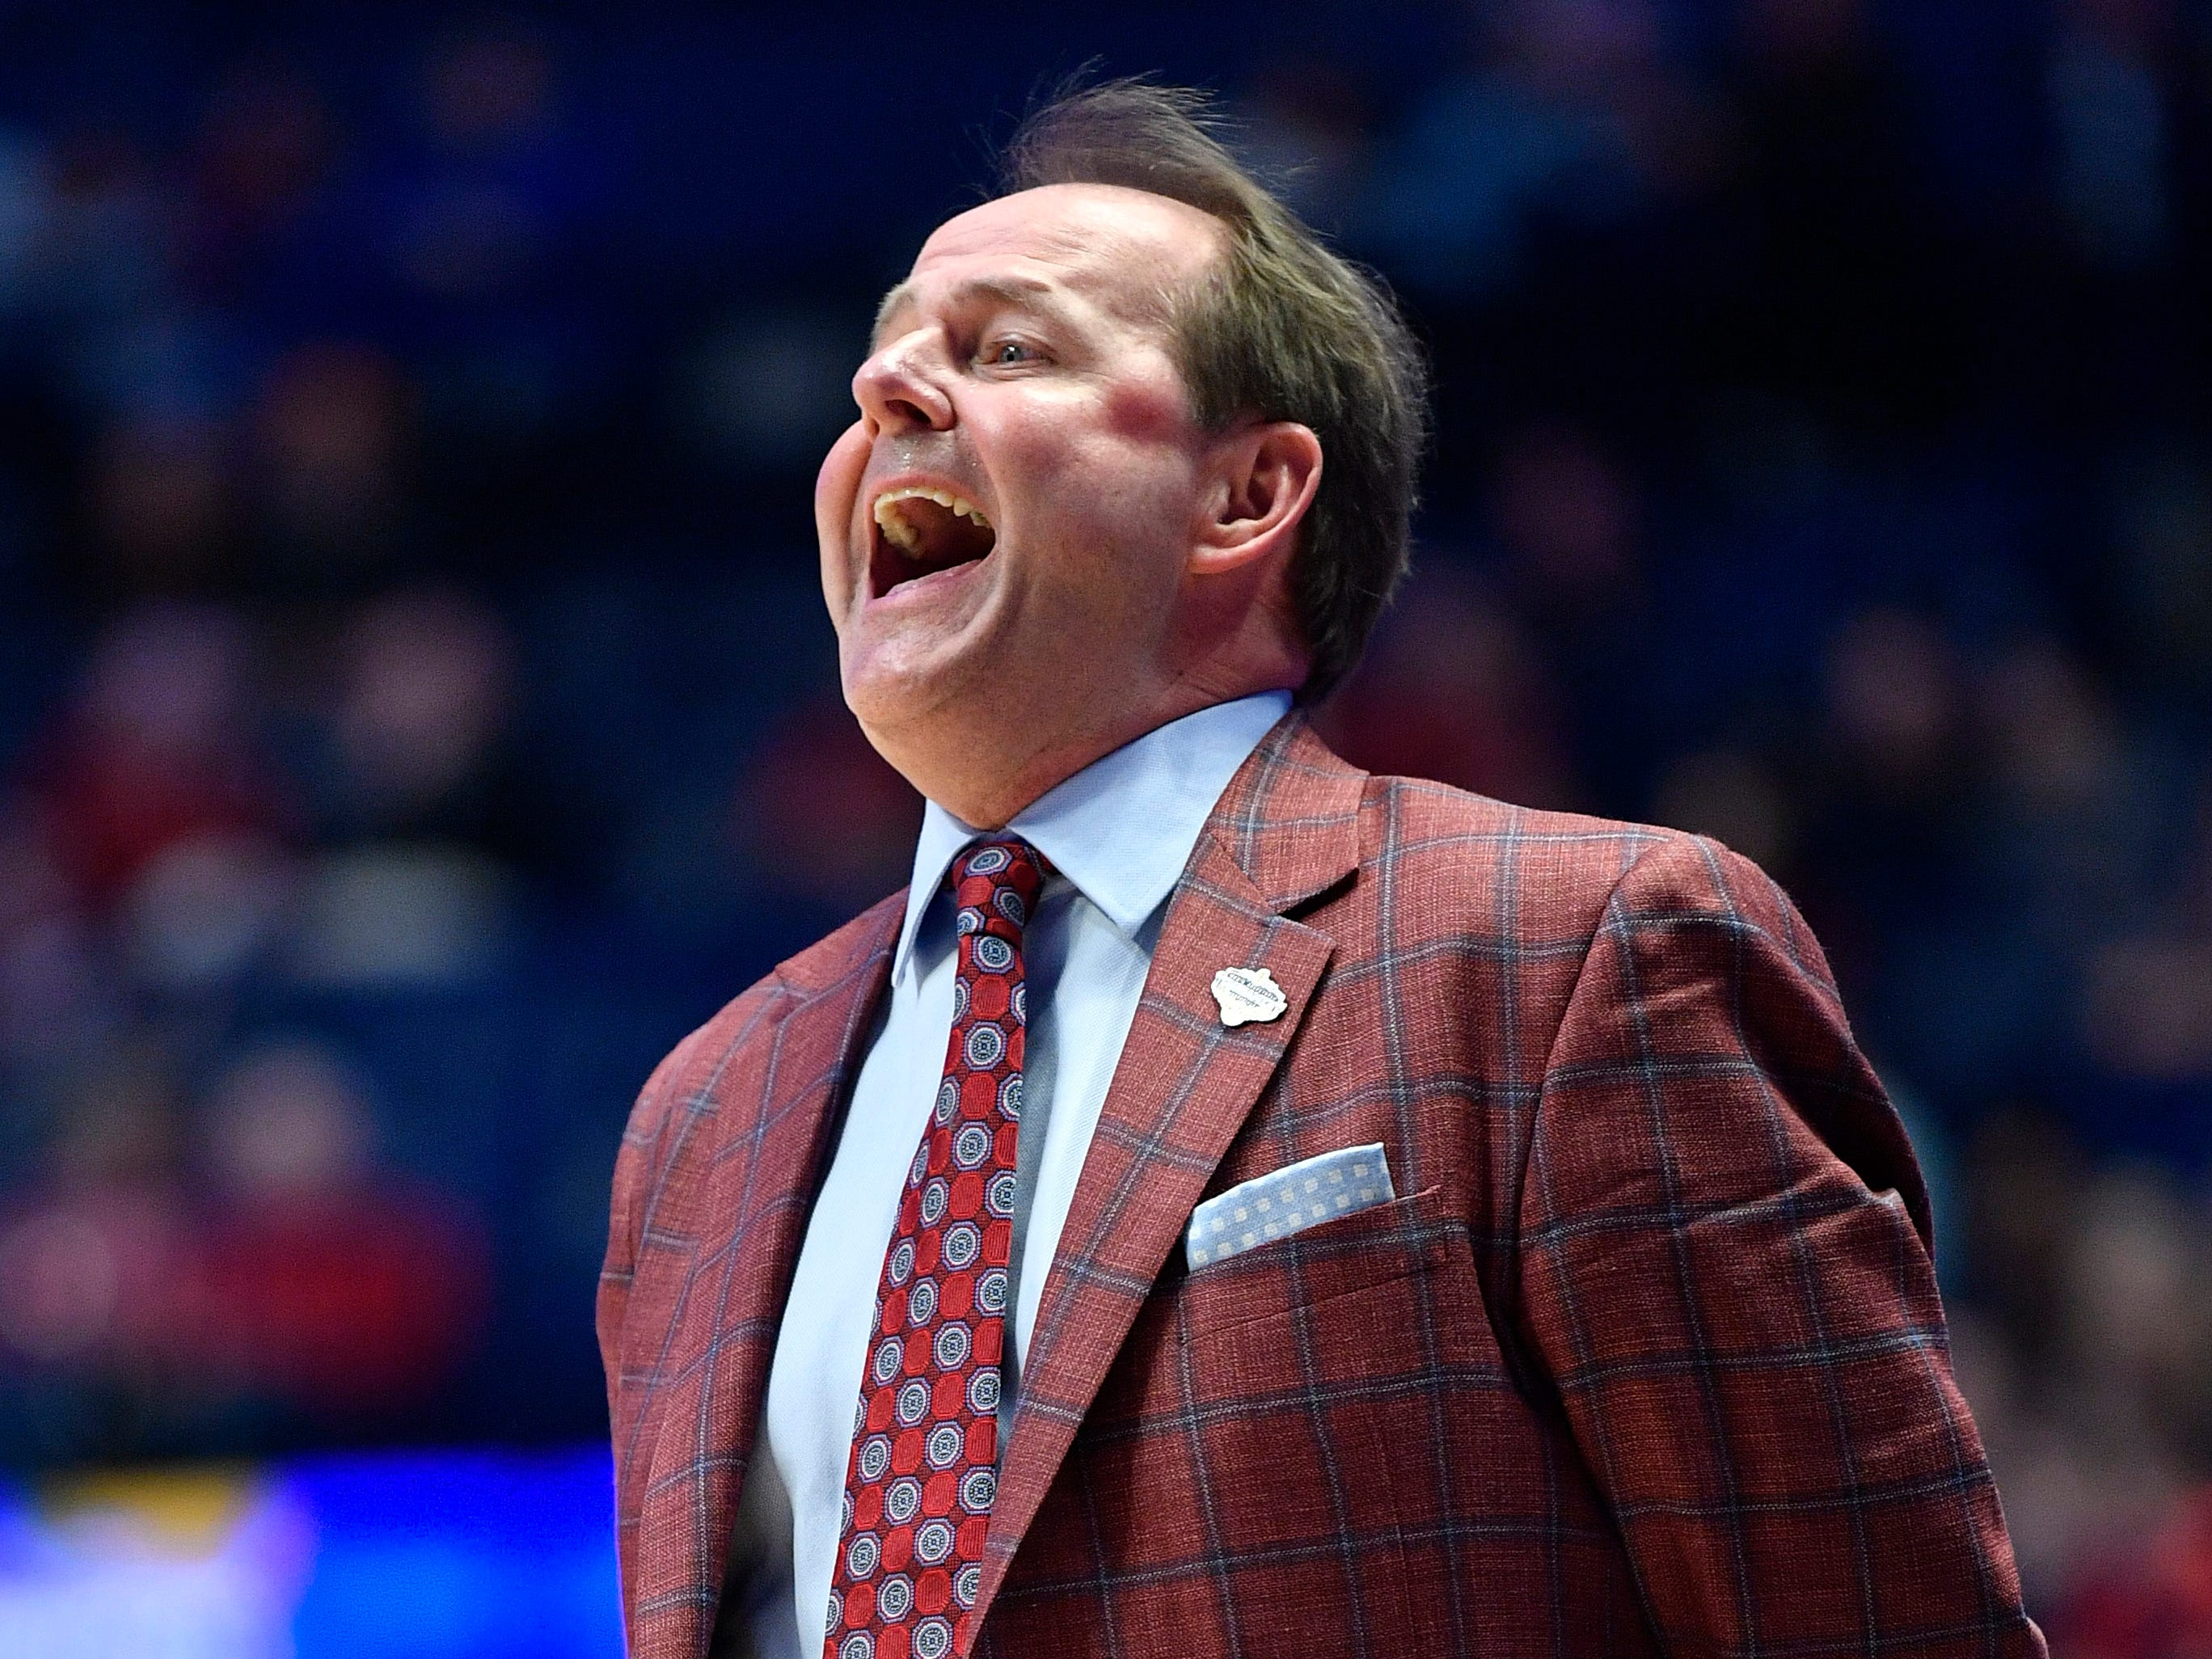 Ole Miss head coach Kermit Davis yells to his team during the first half of the SEC Men's Basketball Tournament game at Bridgestone Arena in Nashville, Tenn., Thursday, March 14, 2019.